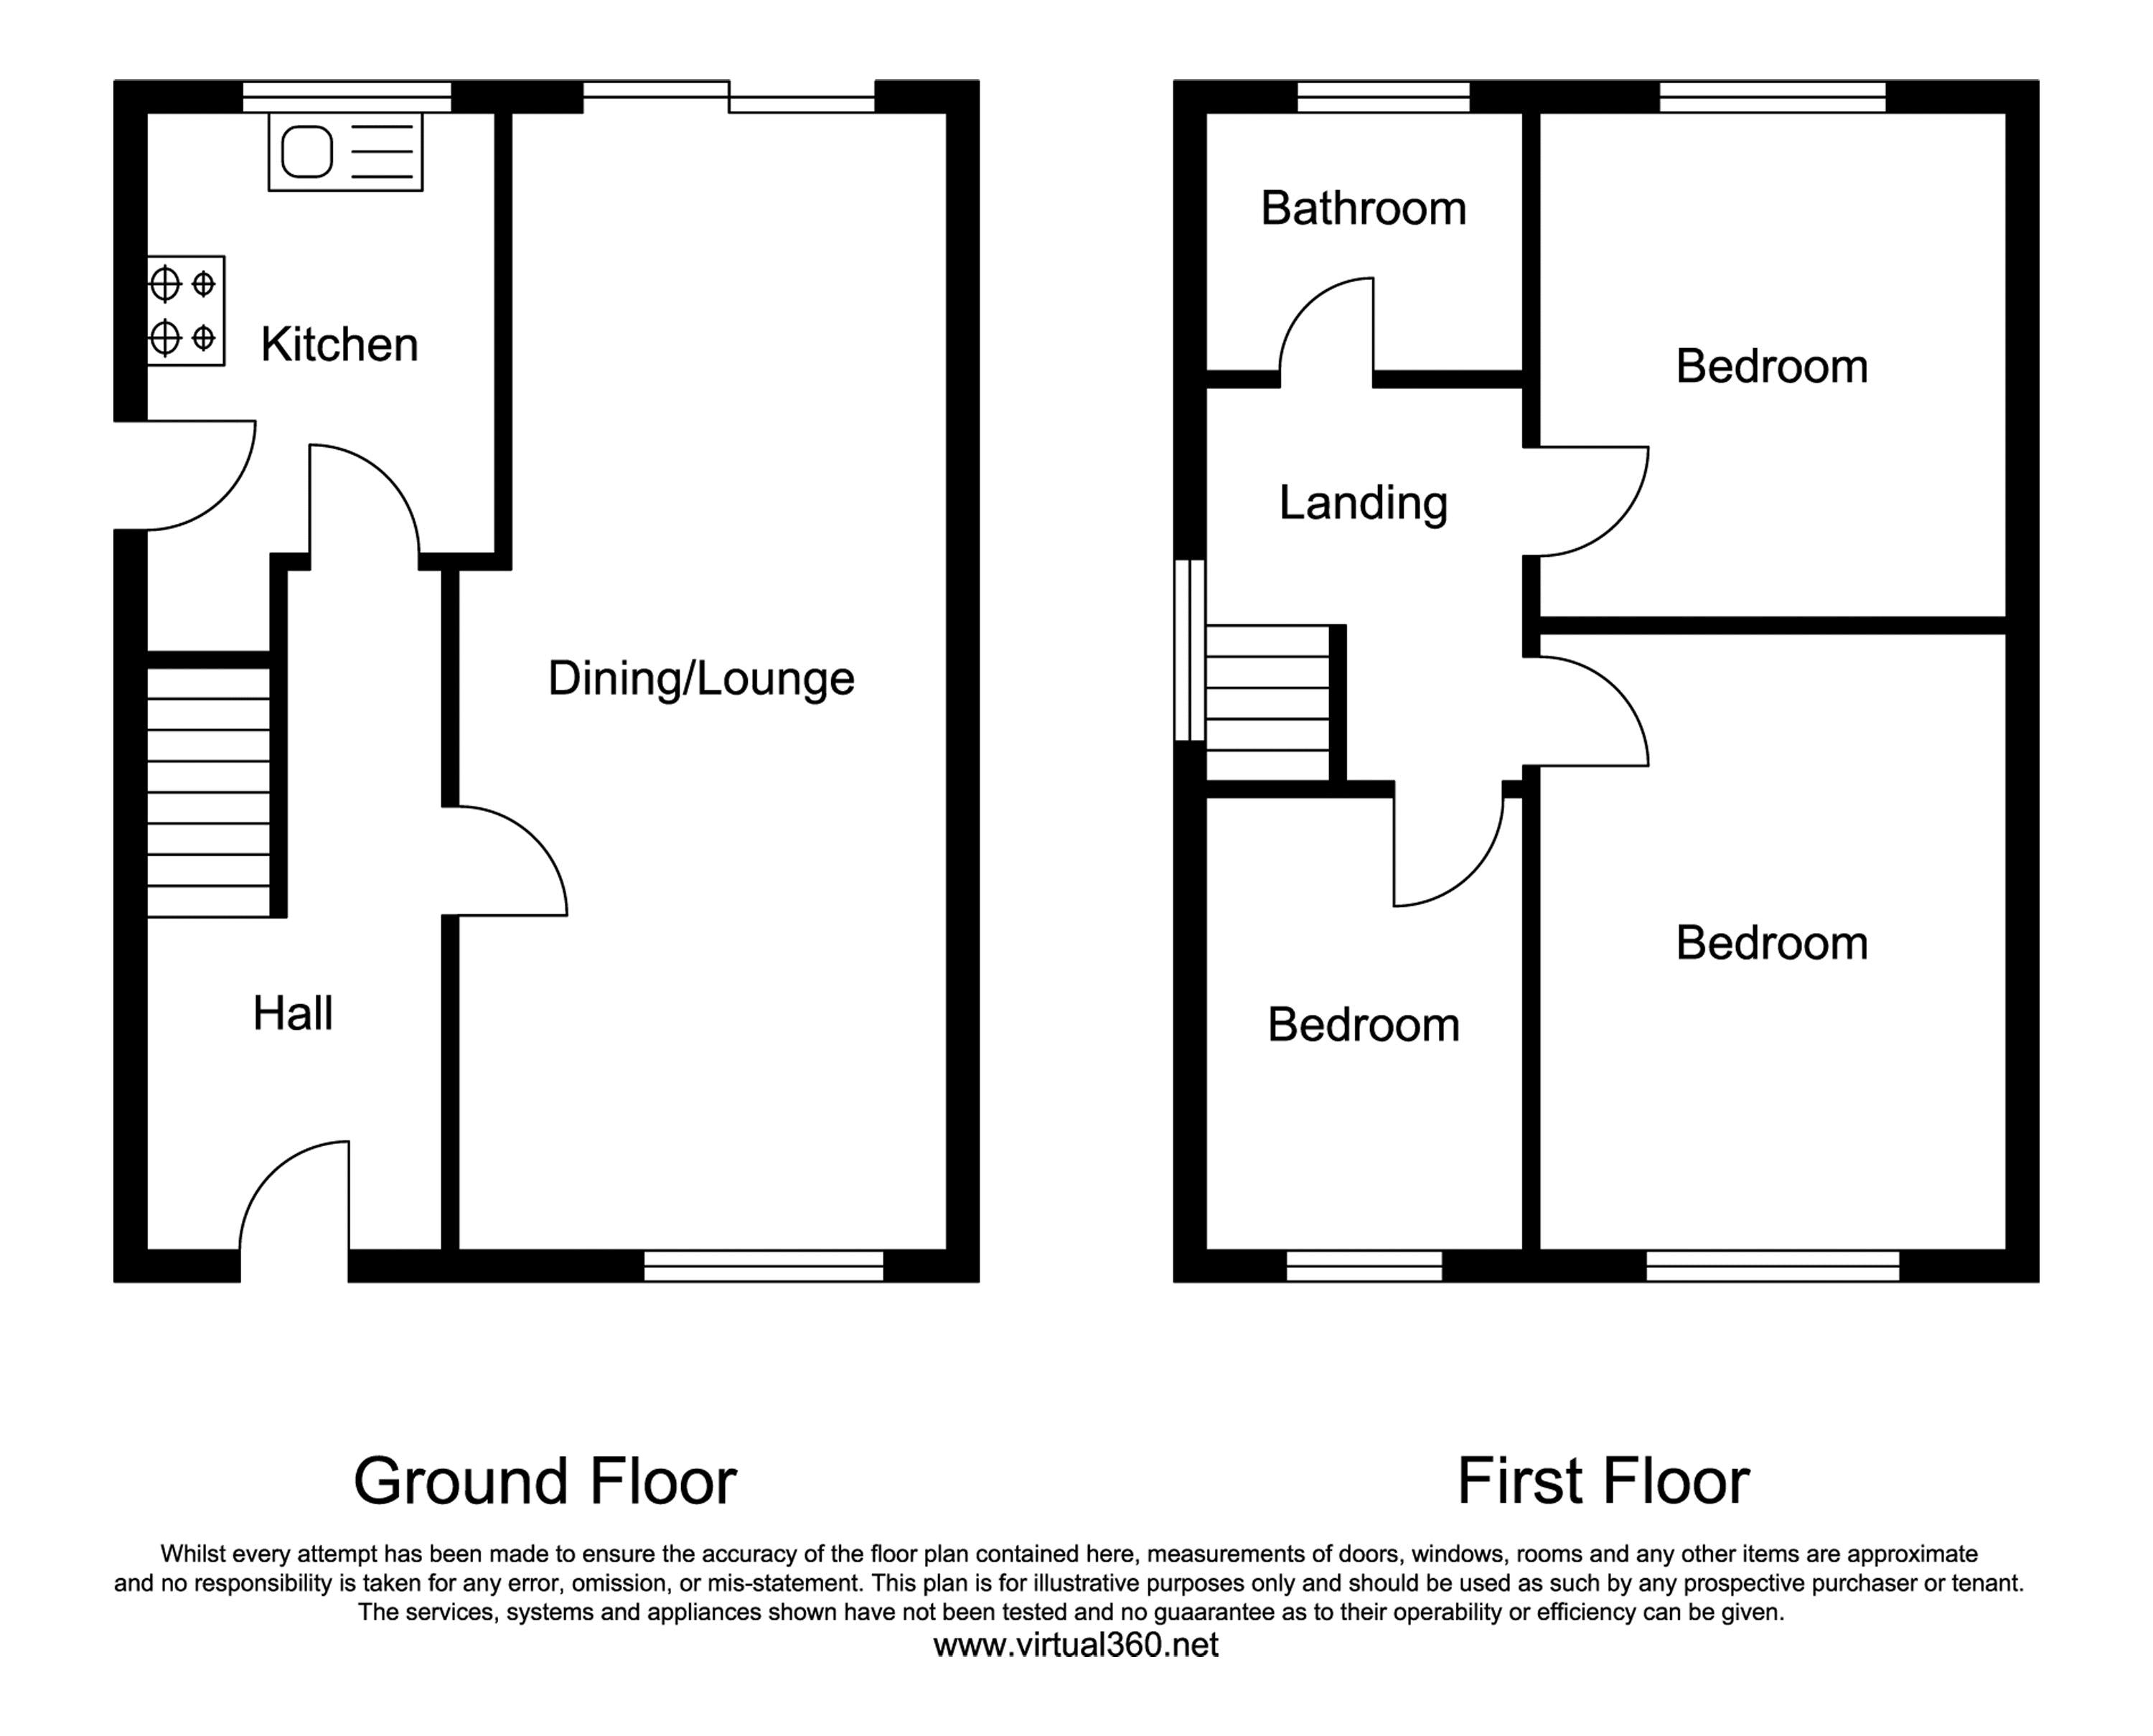 Aylton Close, Worcester floor plan